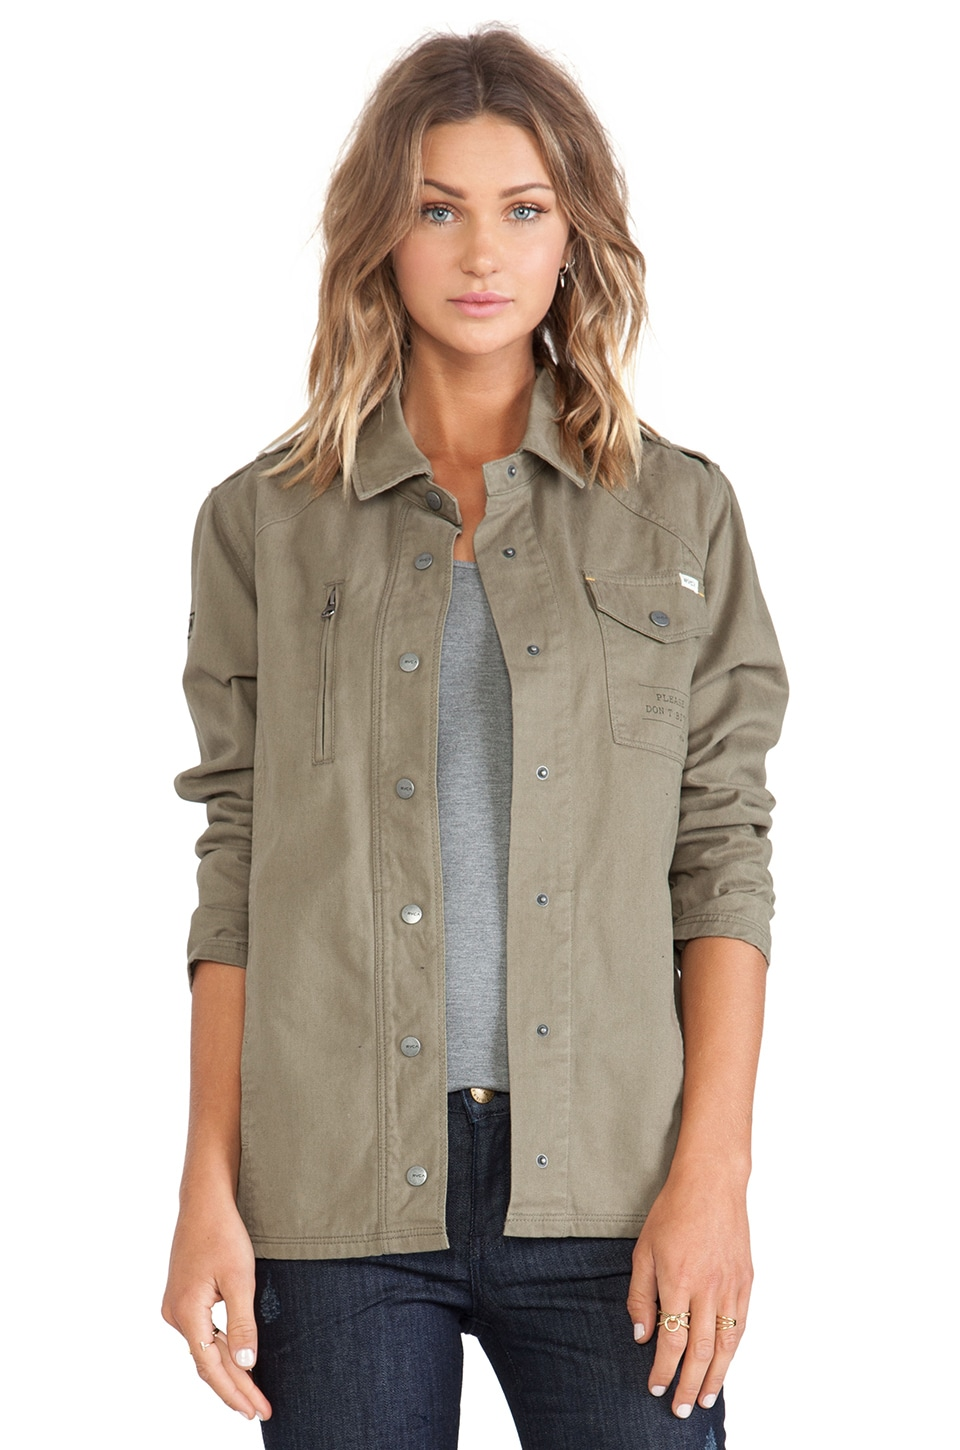 RVCA Global Stream Jacket in Dusty Olive